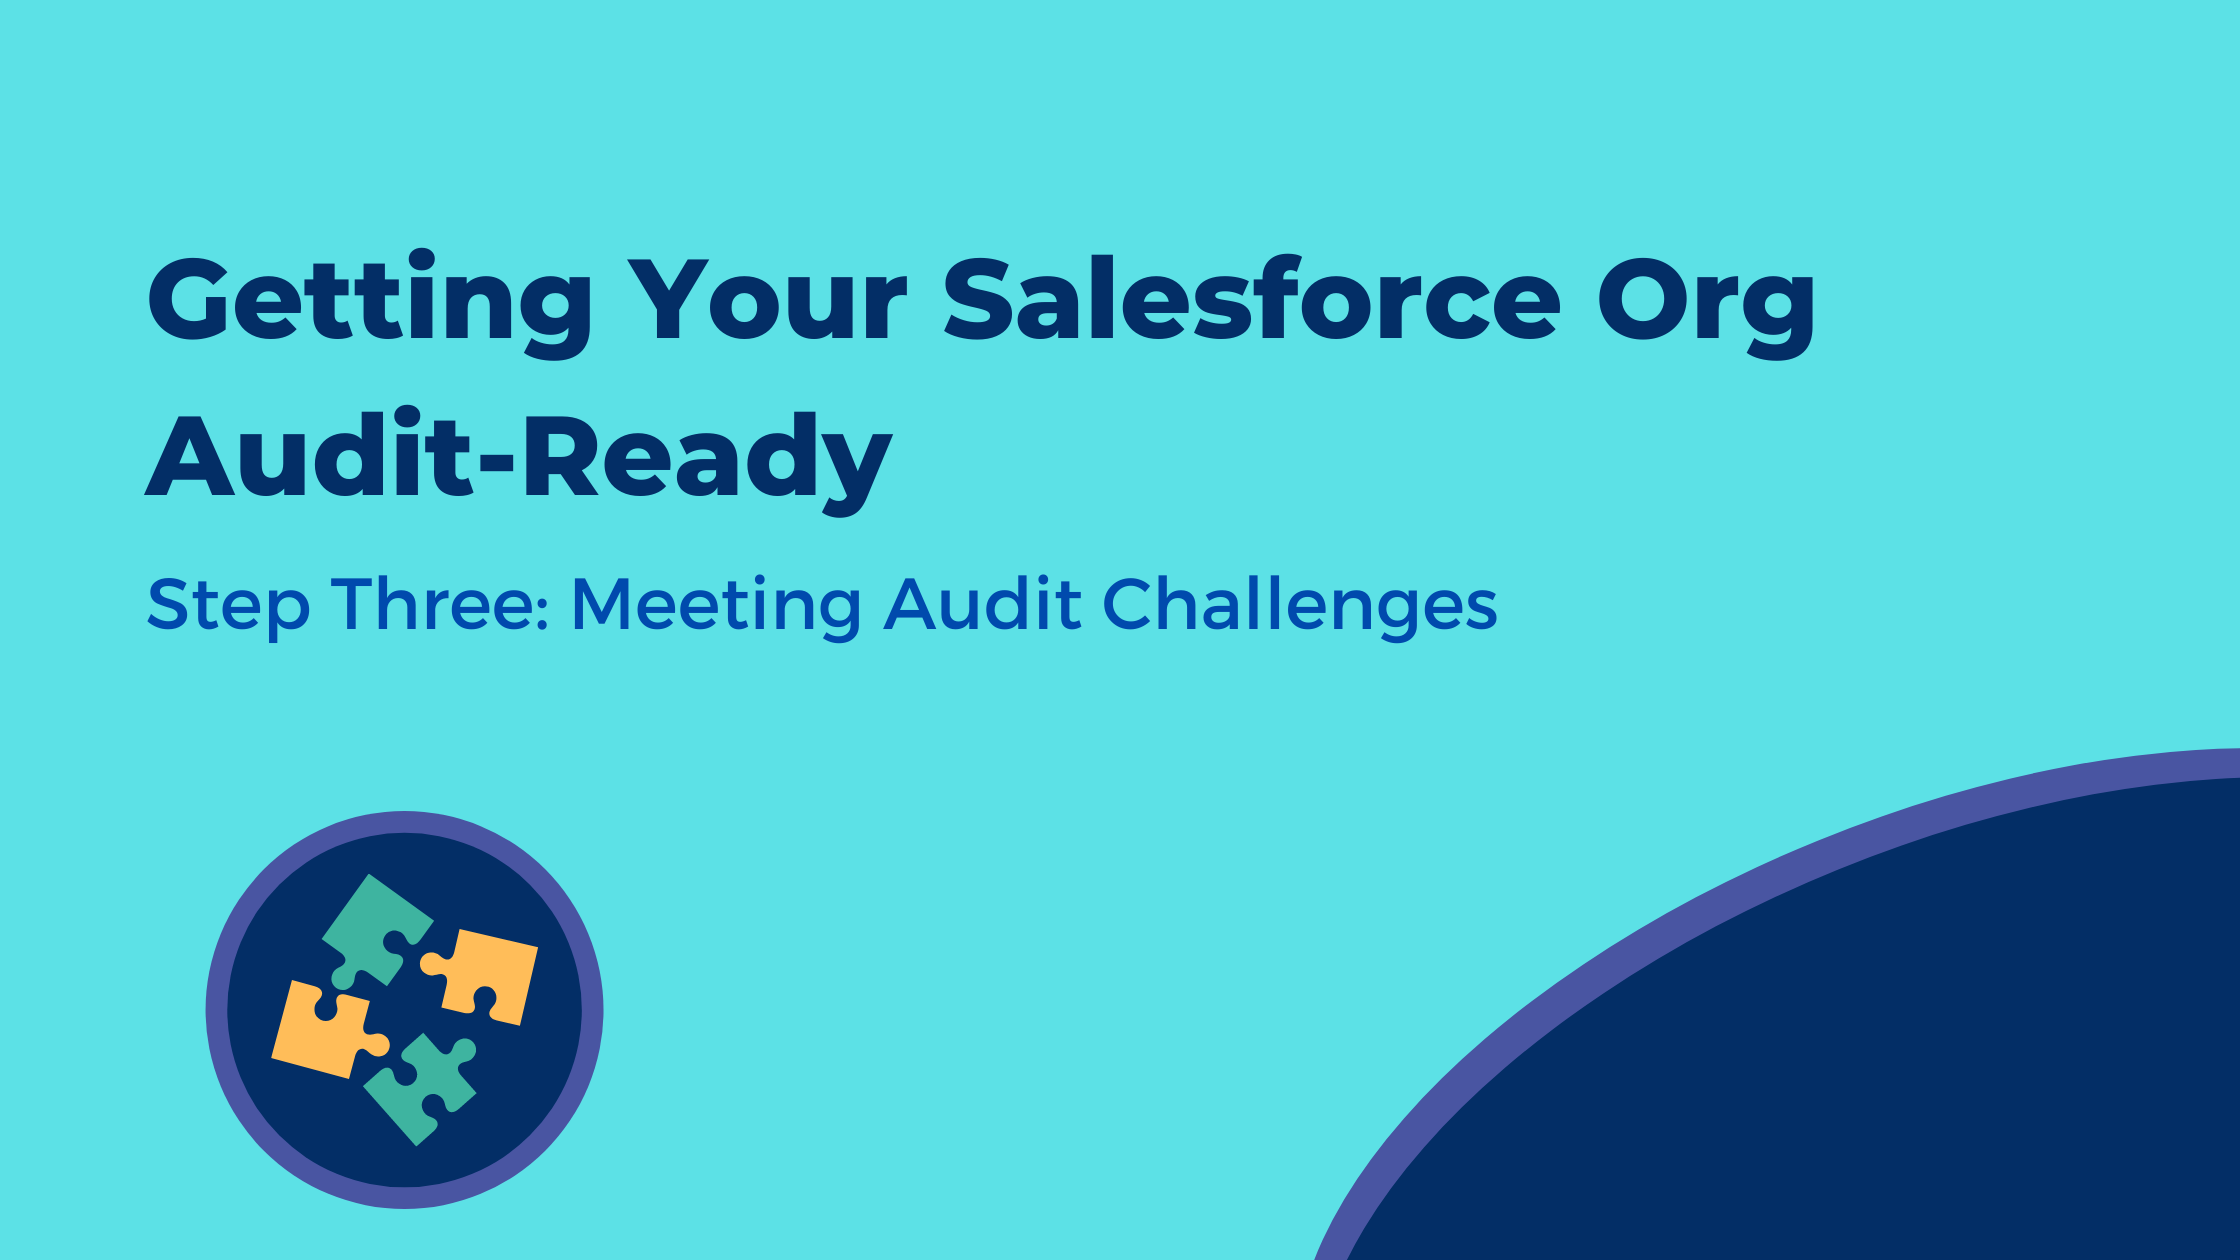 Getting Your Salesforce Org Audit-Ready (3)